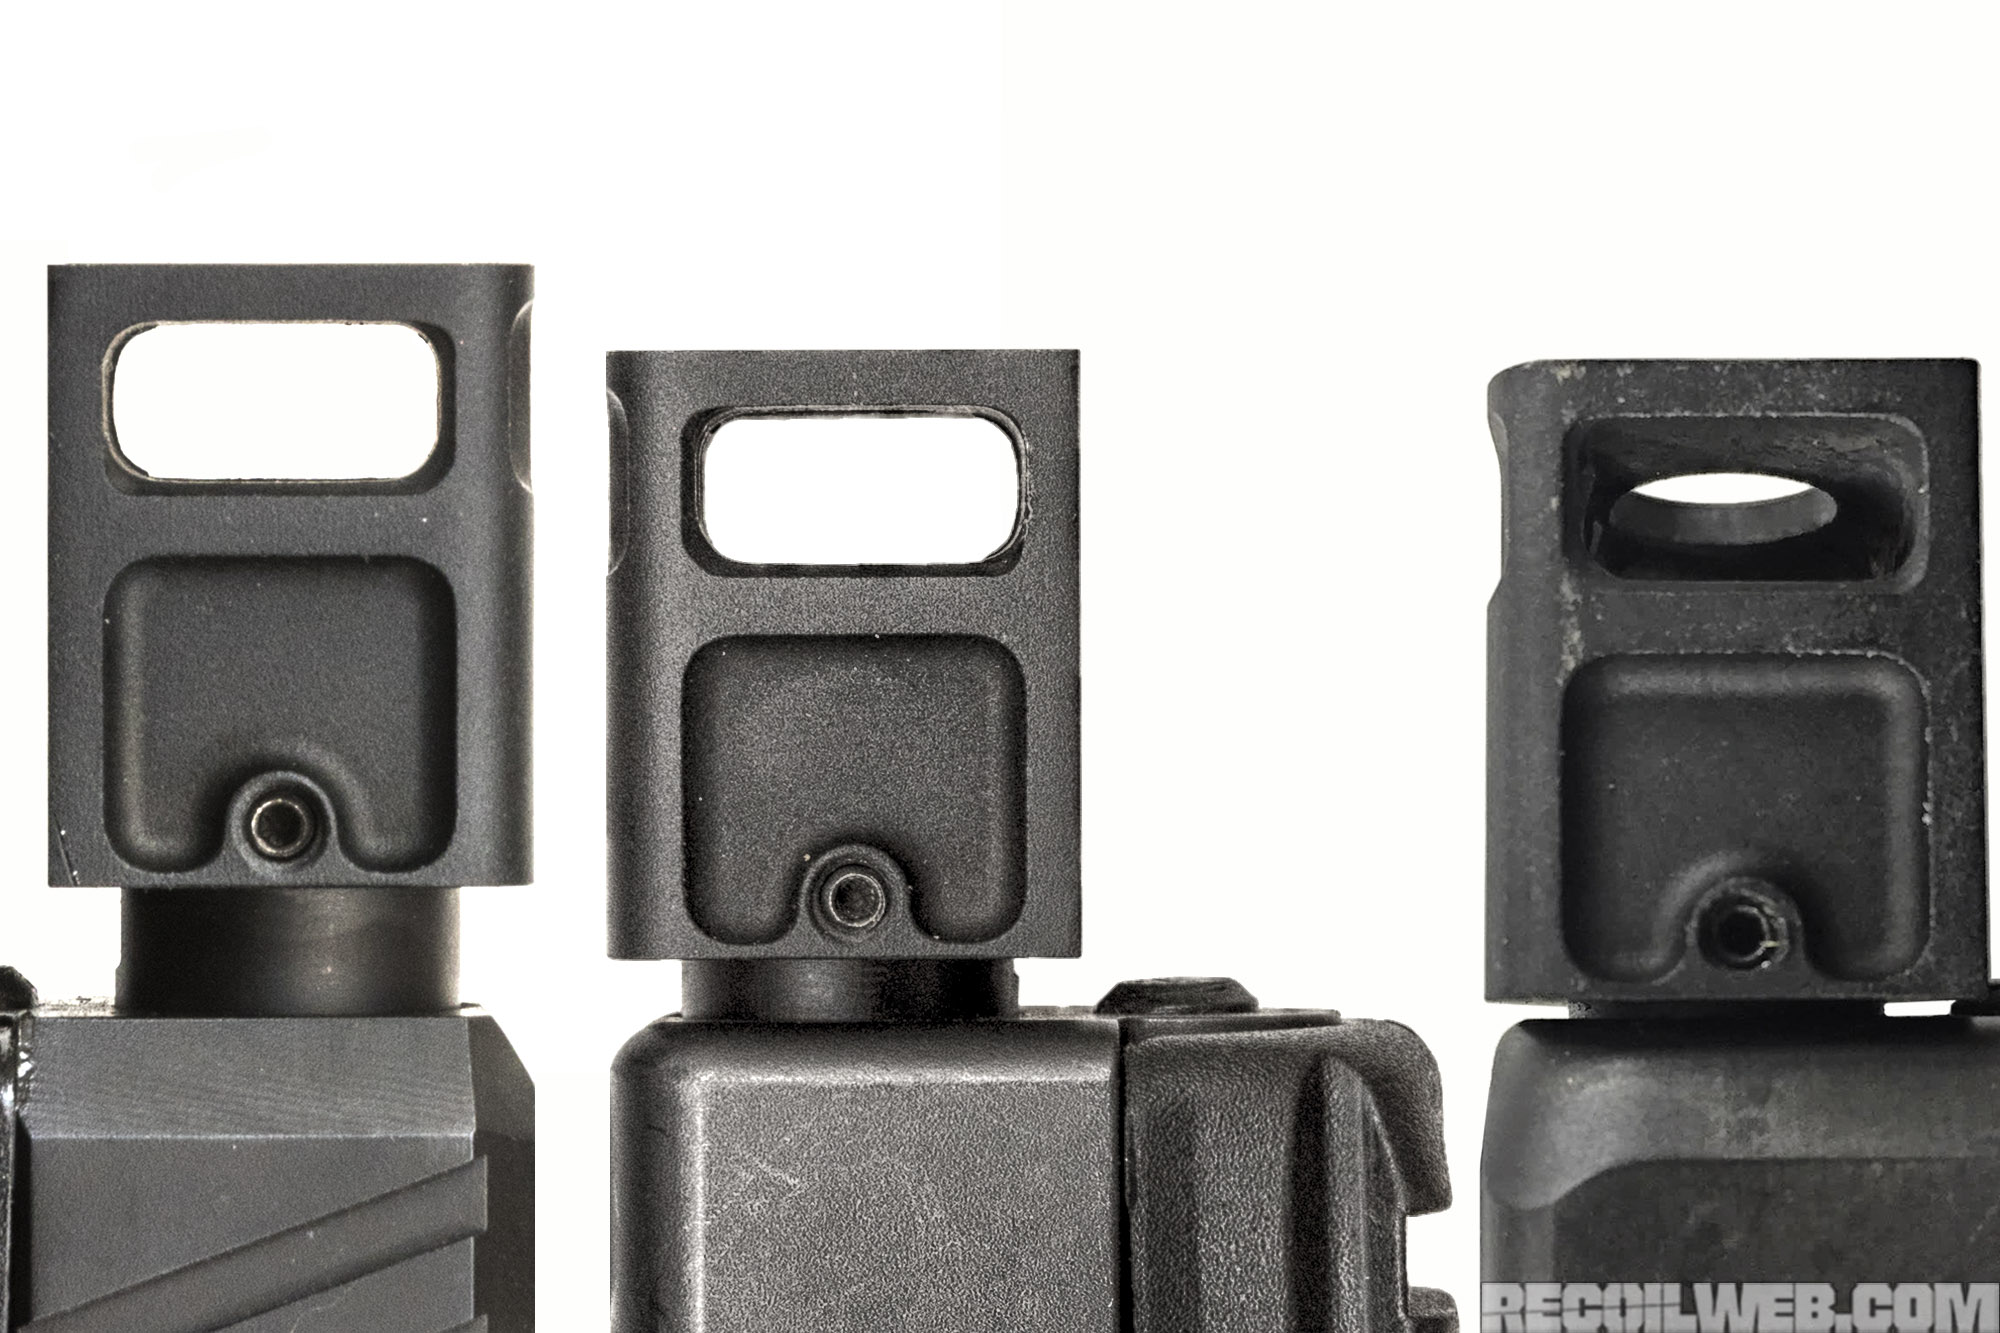 Review The Tbrci Glock Micro Comp Recoil 17 Parts Diagram Related Keywords Suggestions Remember That Texas Black Rifle Company Says Only Extends About 45 Beyond Your Threaded Barreljust Bear In Mind